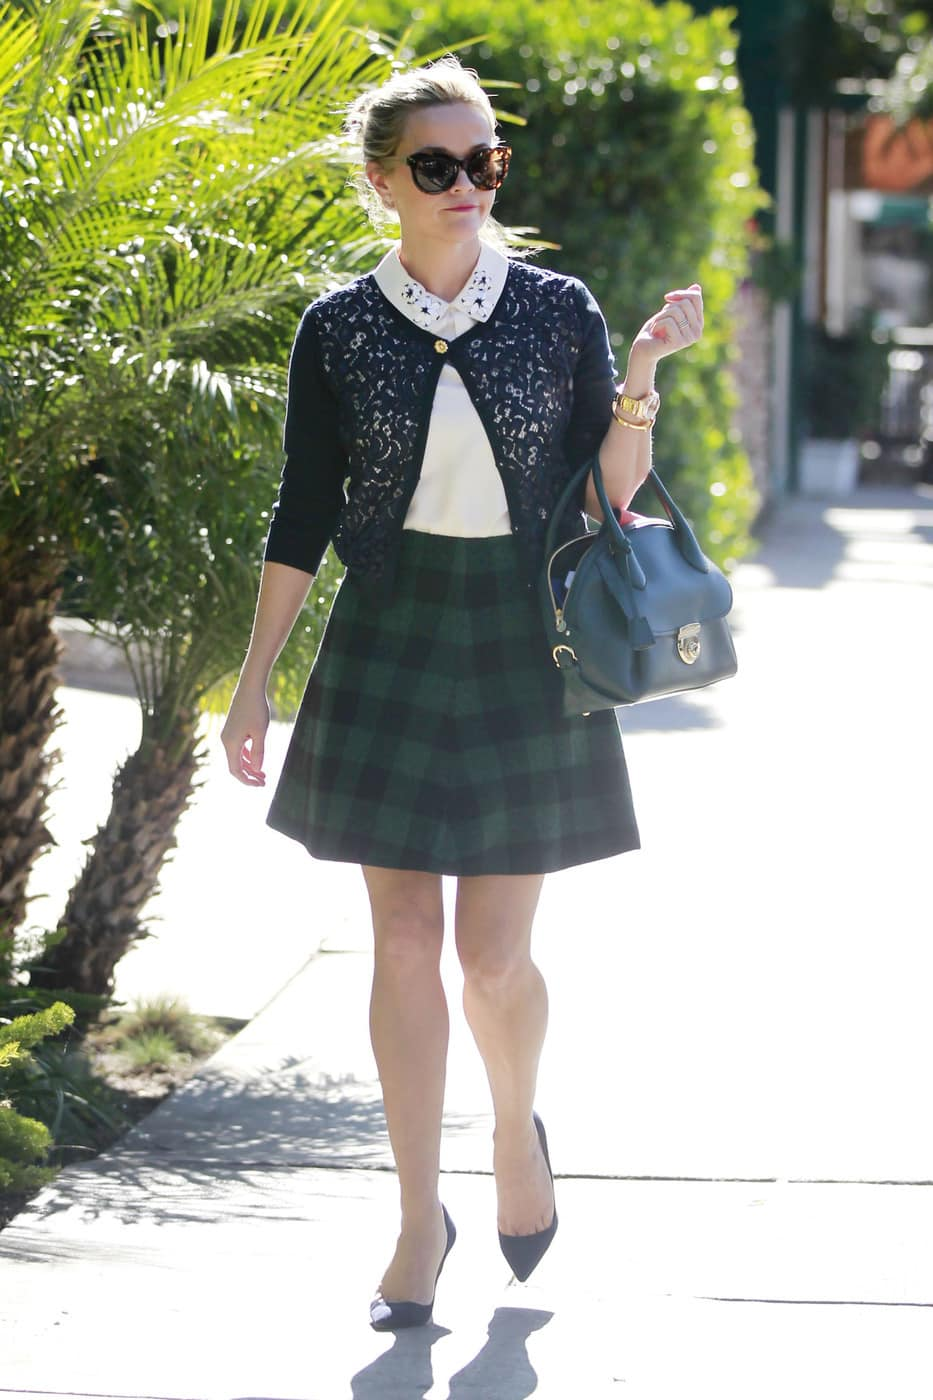 Celebrity fashion: Reese Witherspoon wearing a plaid skirt, cropped lace cardigan, detailed collar shirt, and pointed toe heels with oversized sunglasses and a turnlock purse